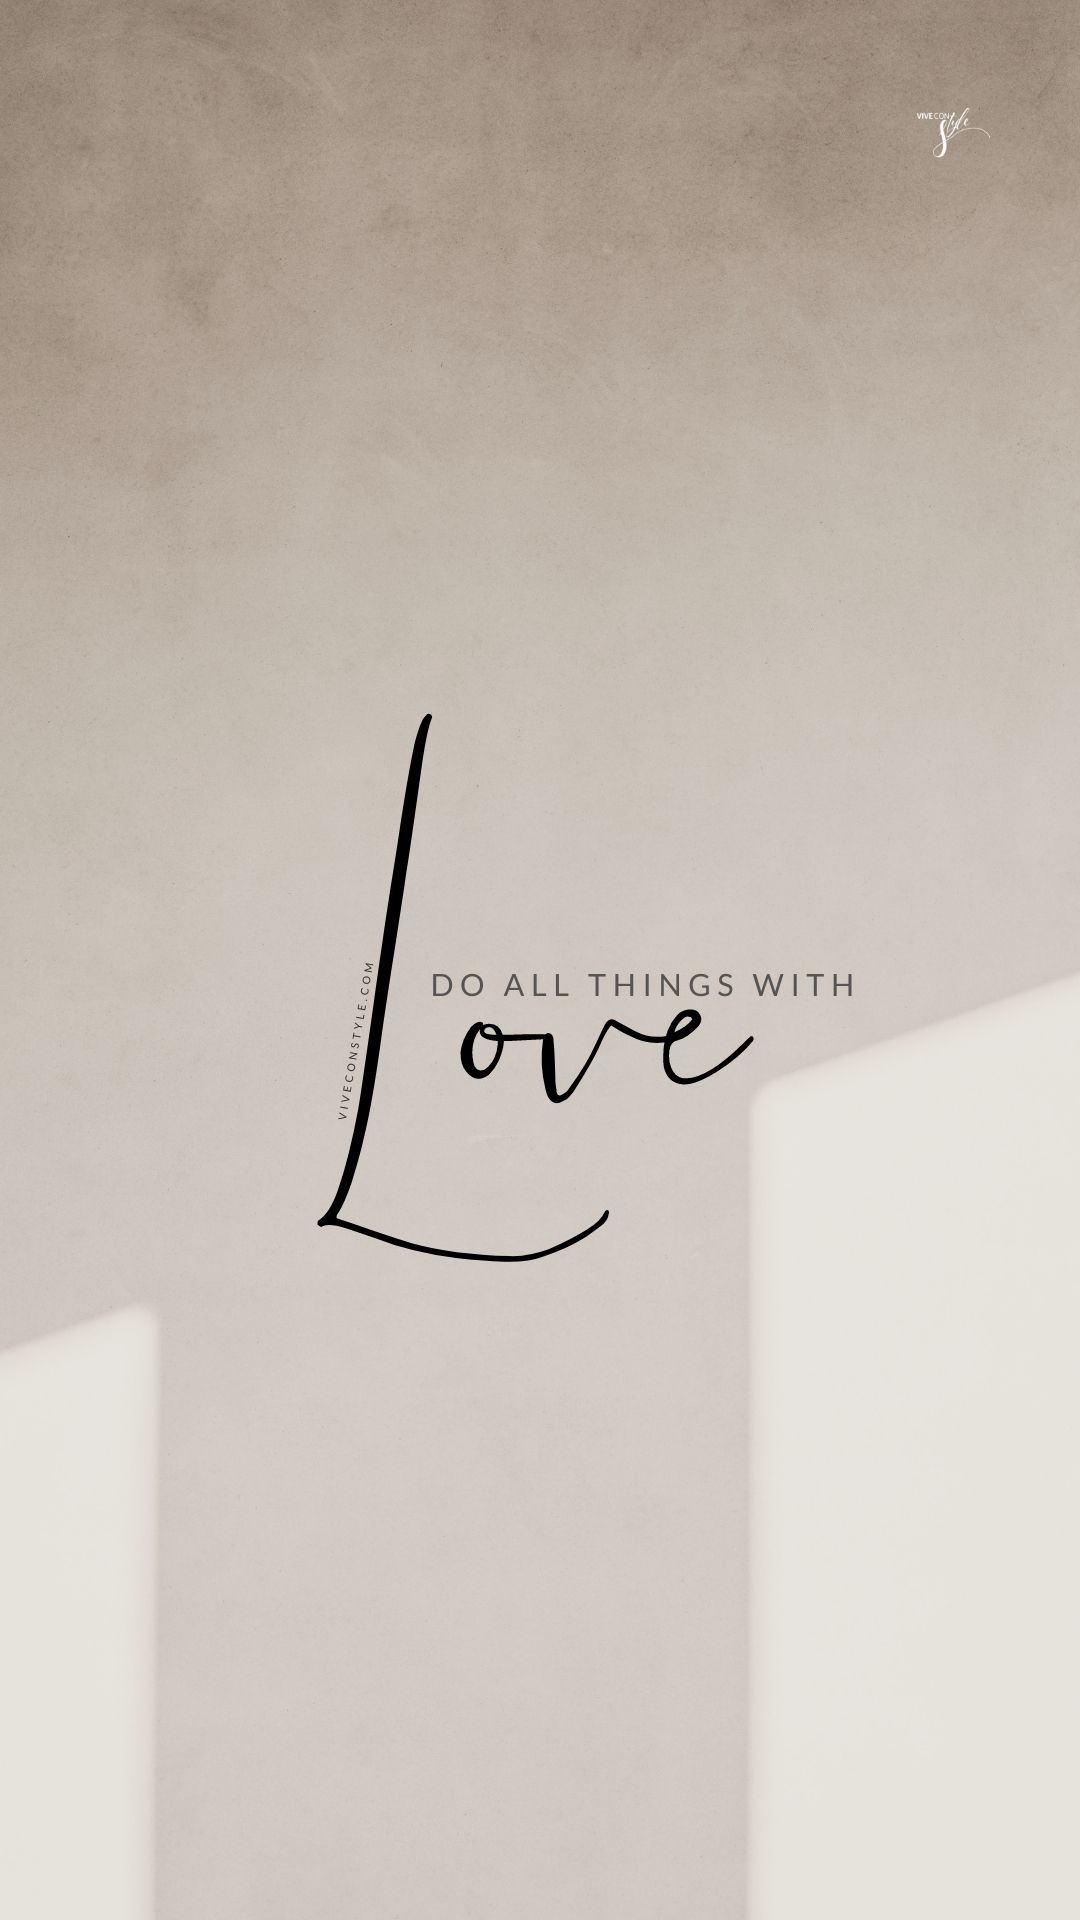 Do all things with love HD Wallpaper